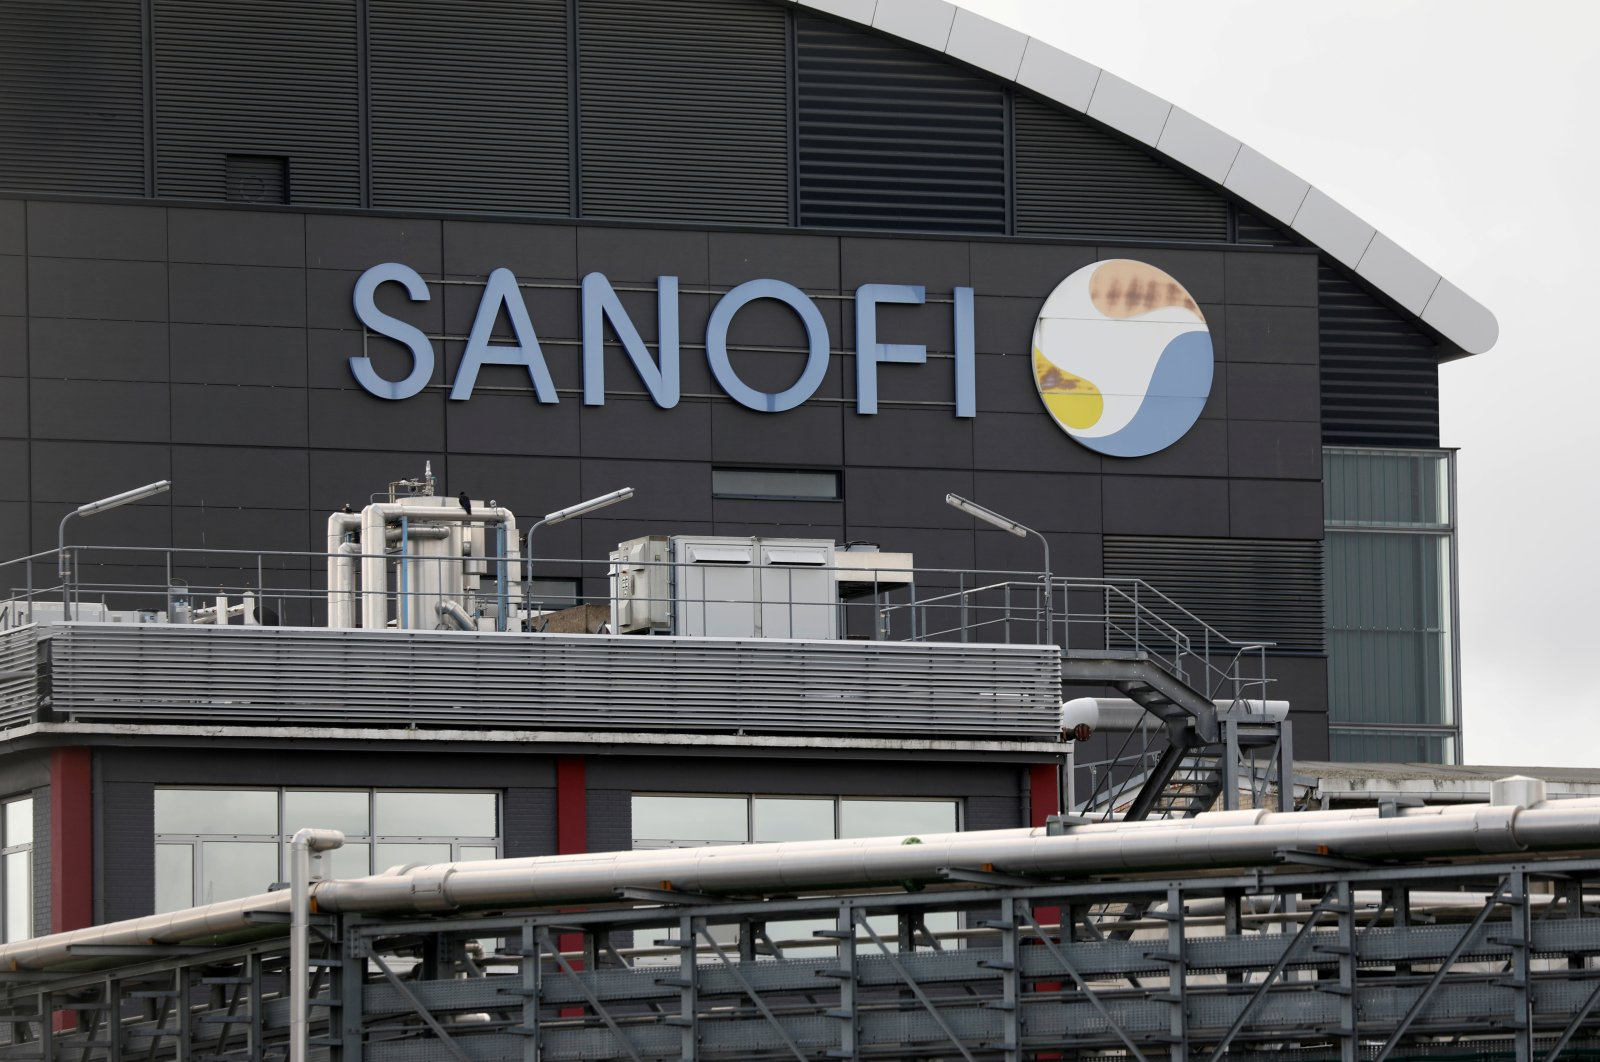 The logo of Sanofi is seen at the company's research and production center in Vitry-sur-Seine, France, Aug. 6, 2019. (Reuters Photo)